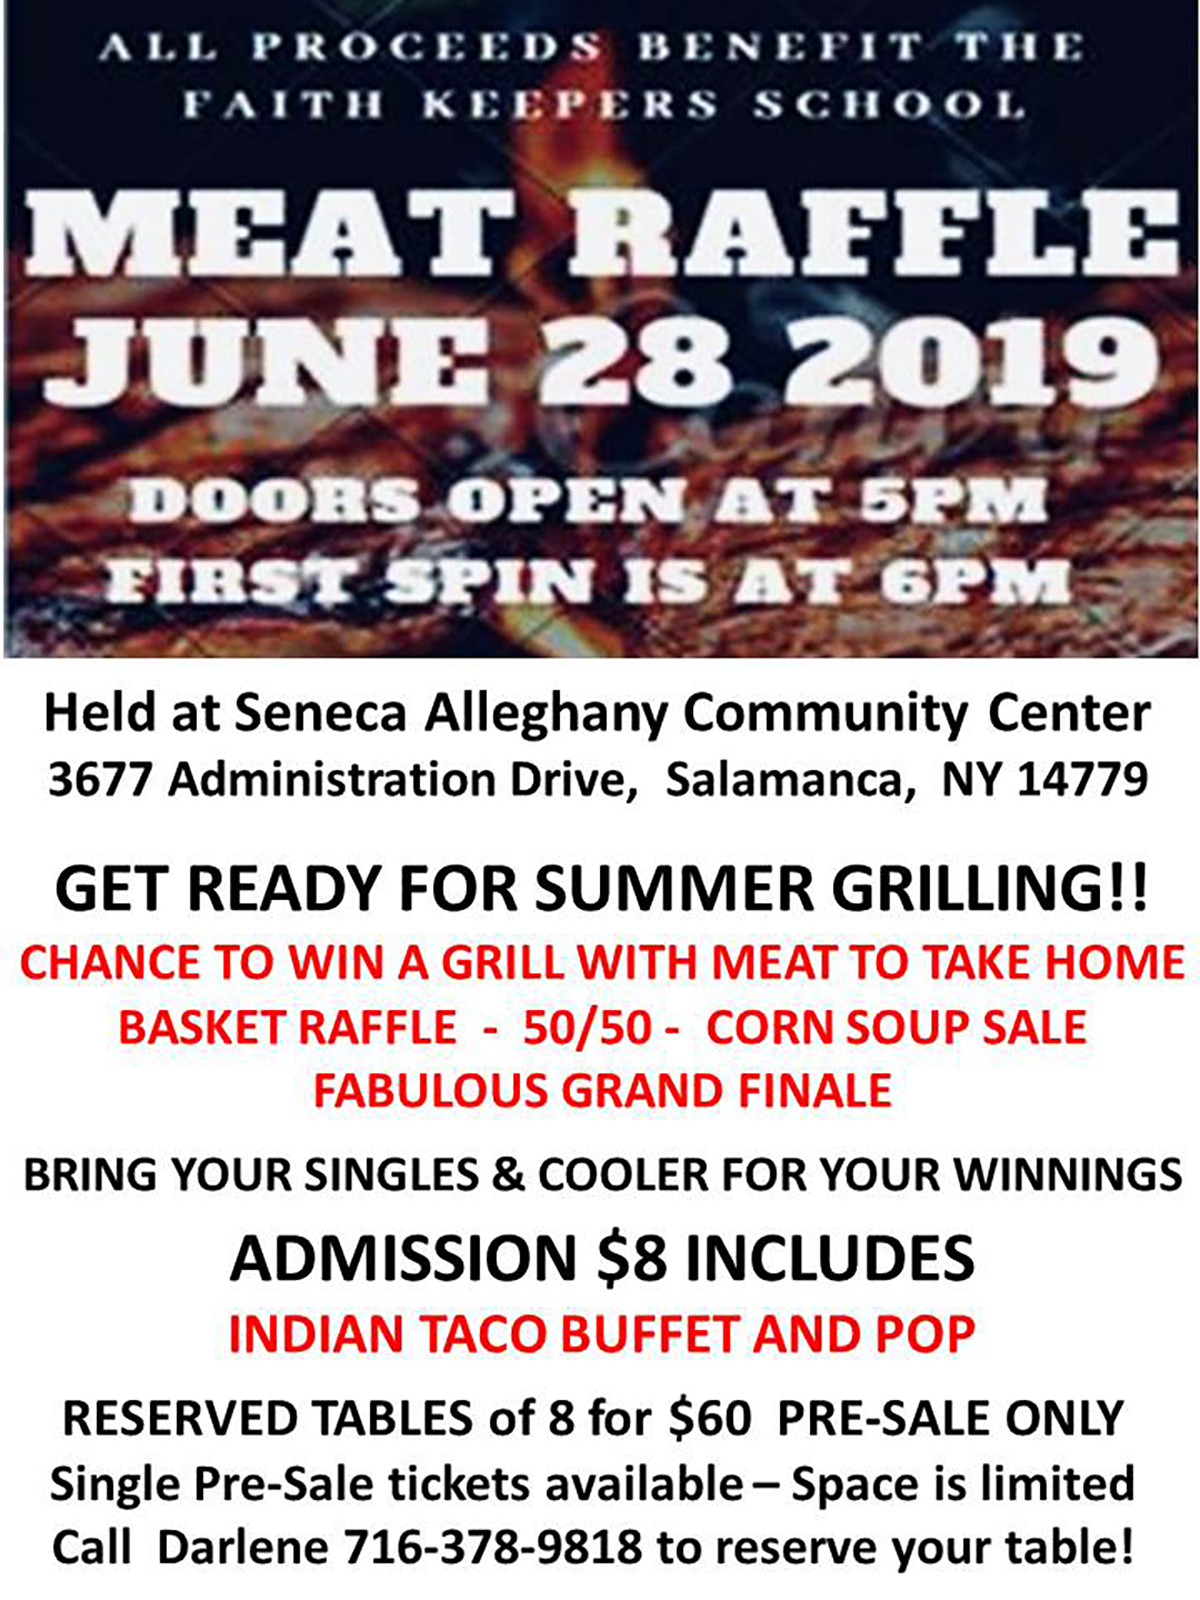 FKS Meat Raffle 2019 flyer.jpg